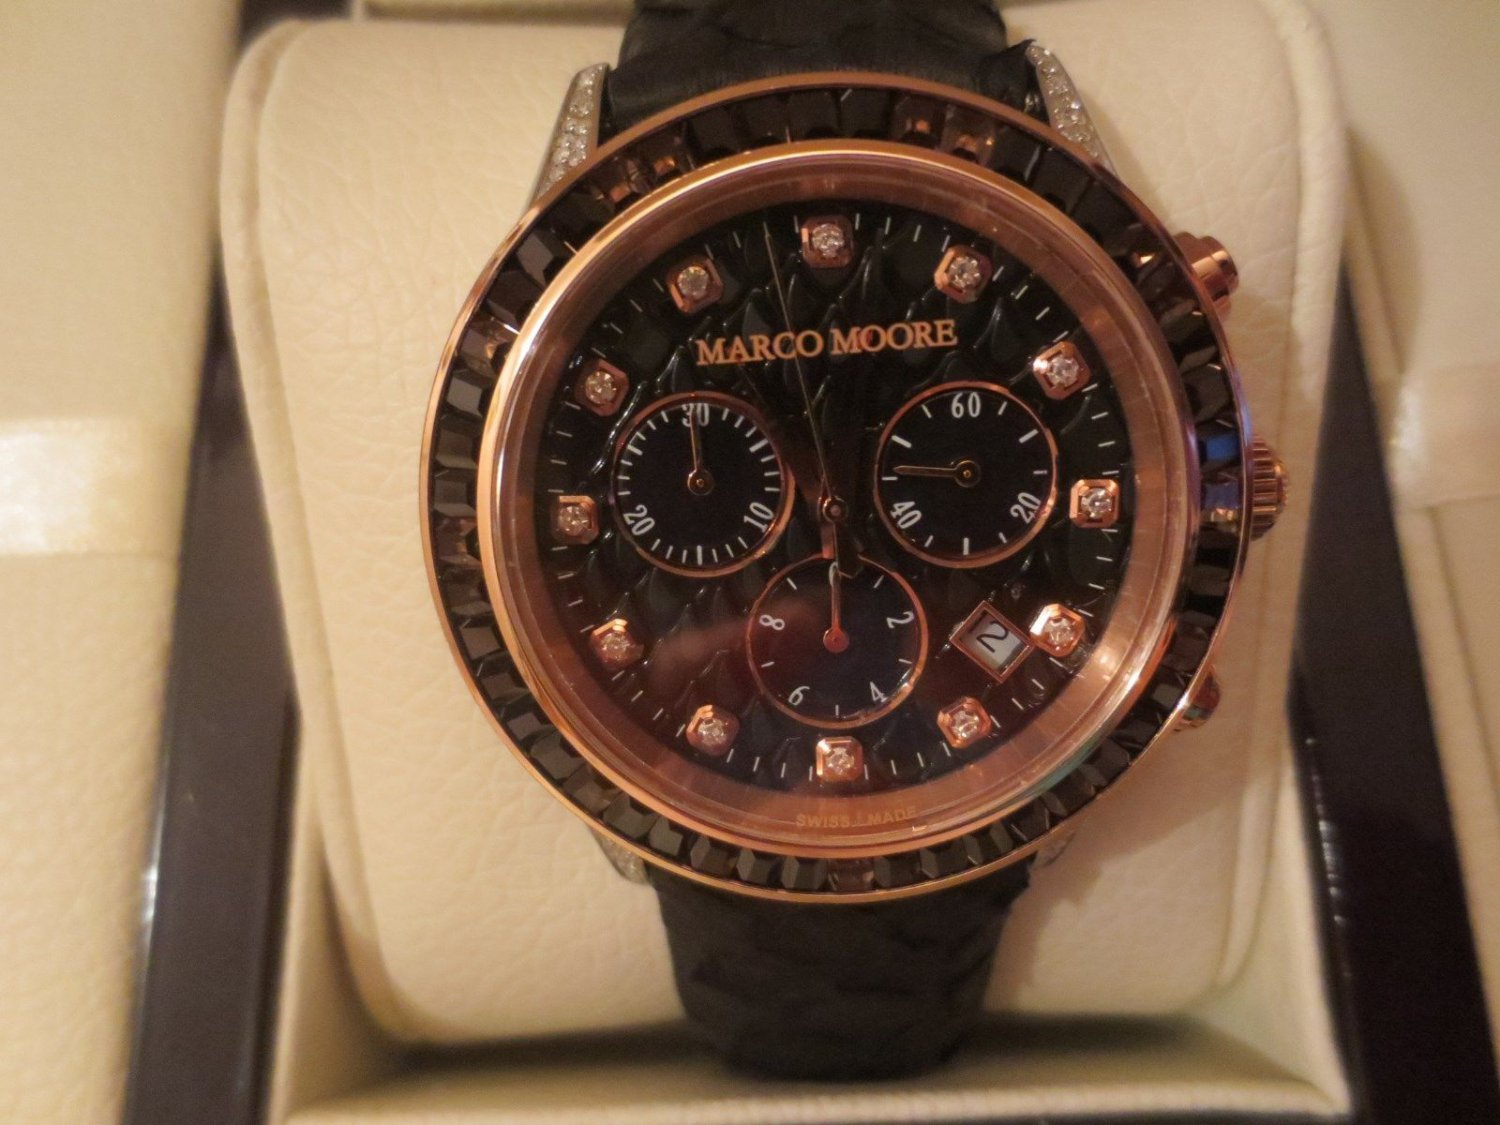 Marco Moore Swiss Made Chronograph, 41mm,Price $1,995.00.